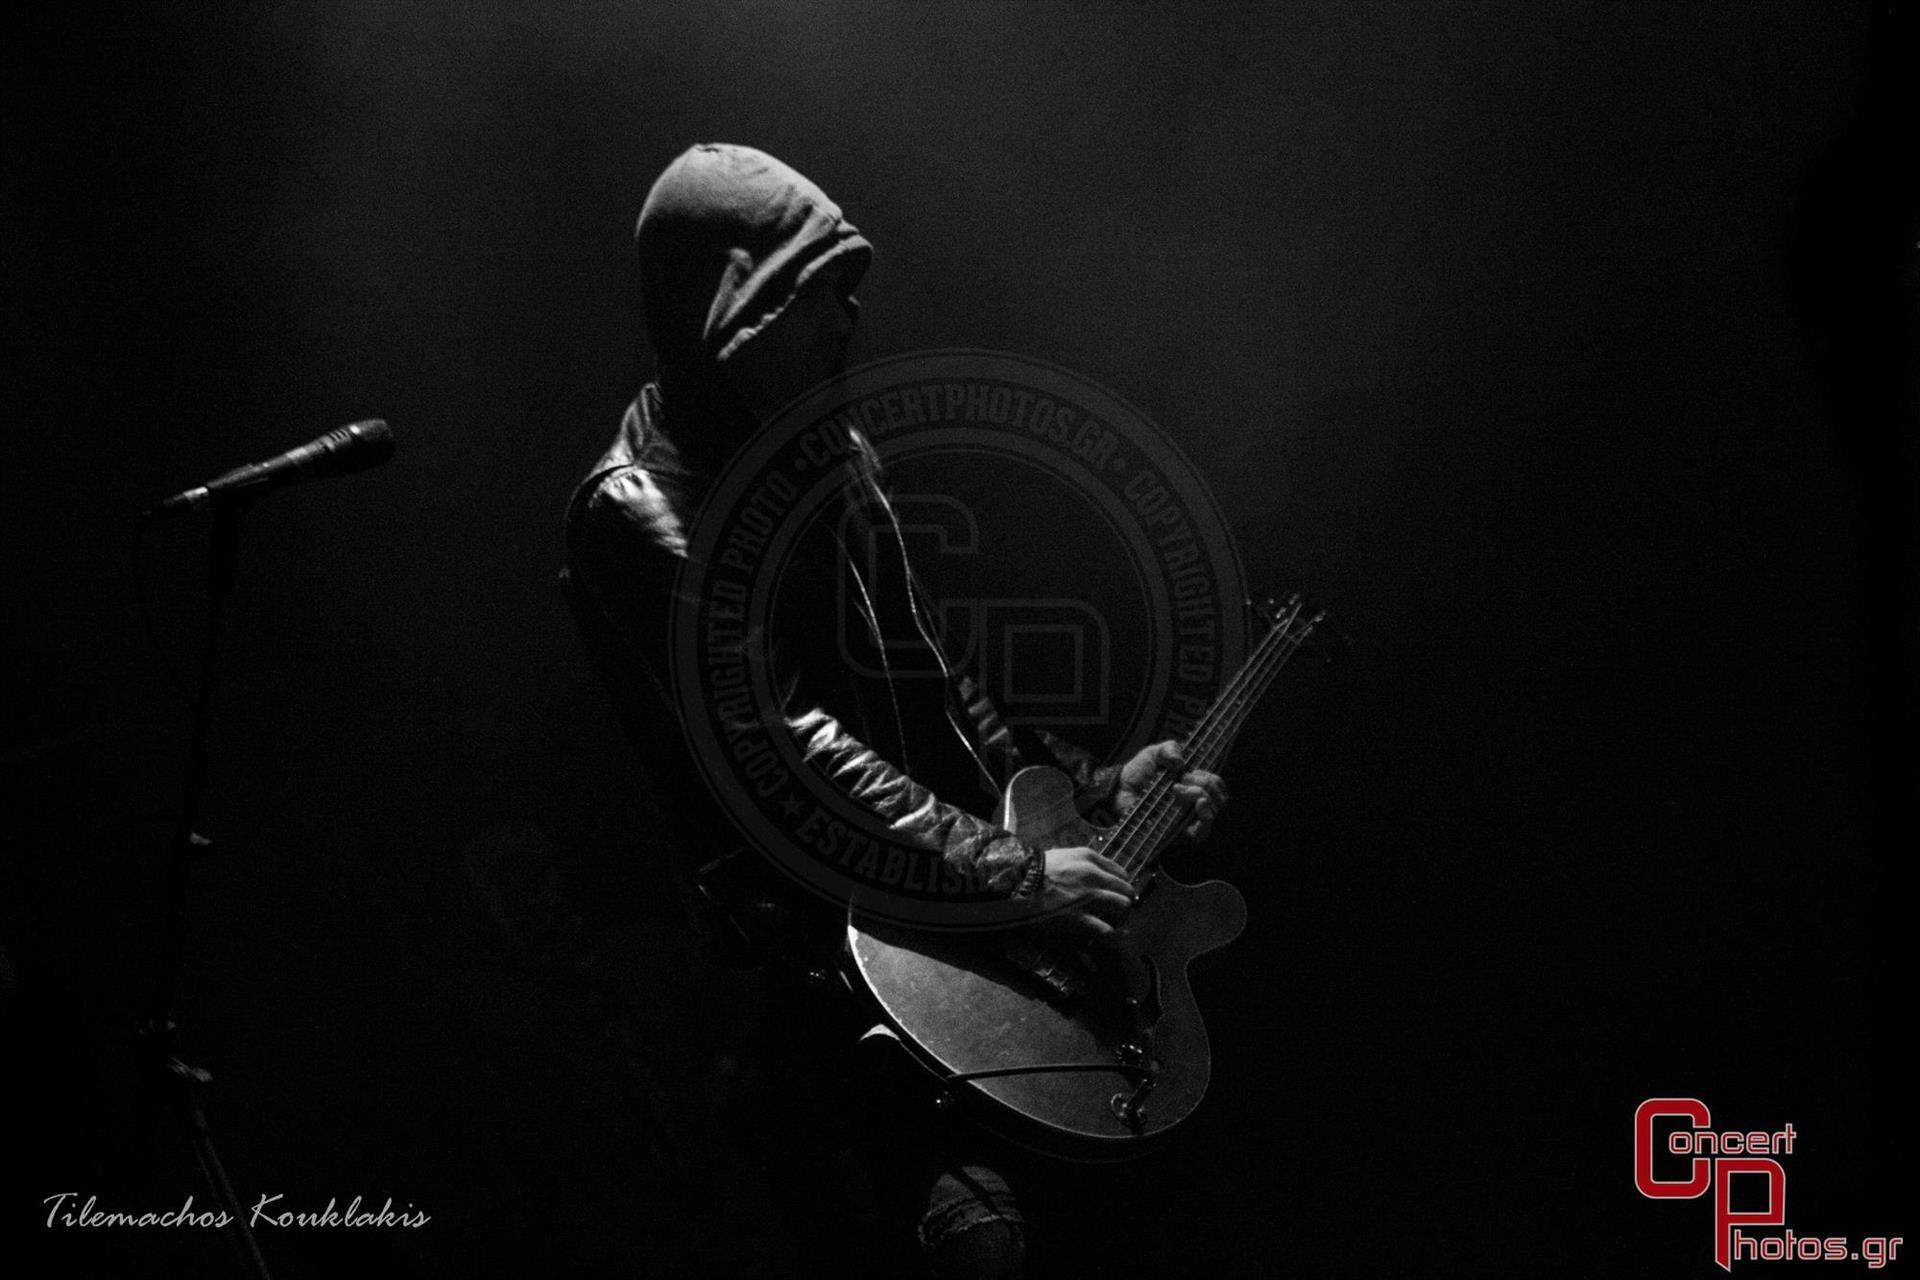 Black Rebel Motorcycle Club-Black Rebel Motorcyclw Club Acro photographer:  - IMG_6098